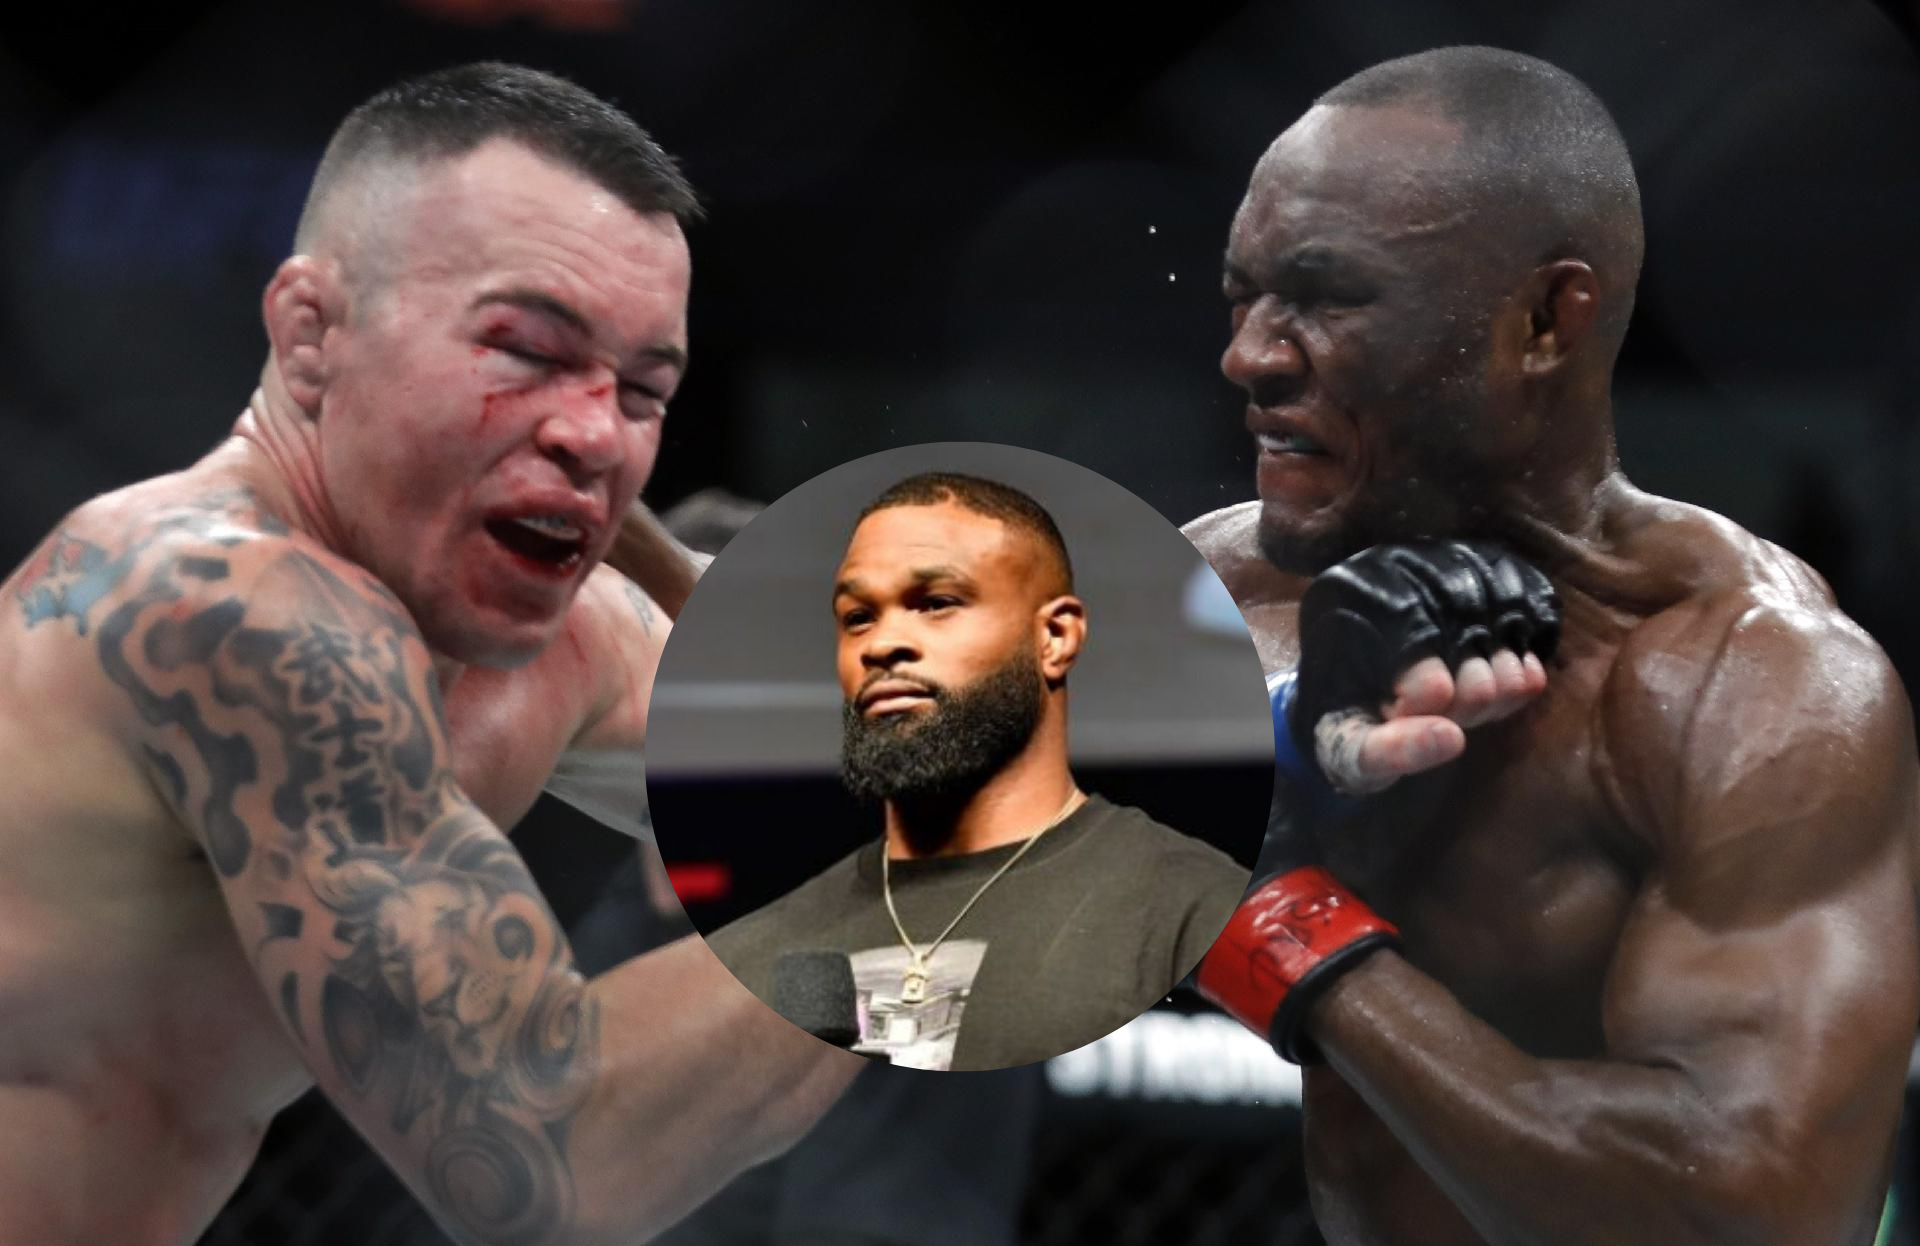 UFC News:Colby Covington no longer interested in fighting Woodley, wants to fight Kamaru Usman next - Covington